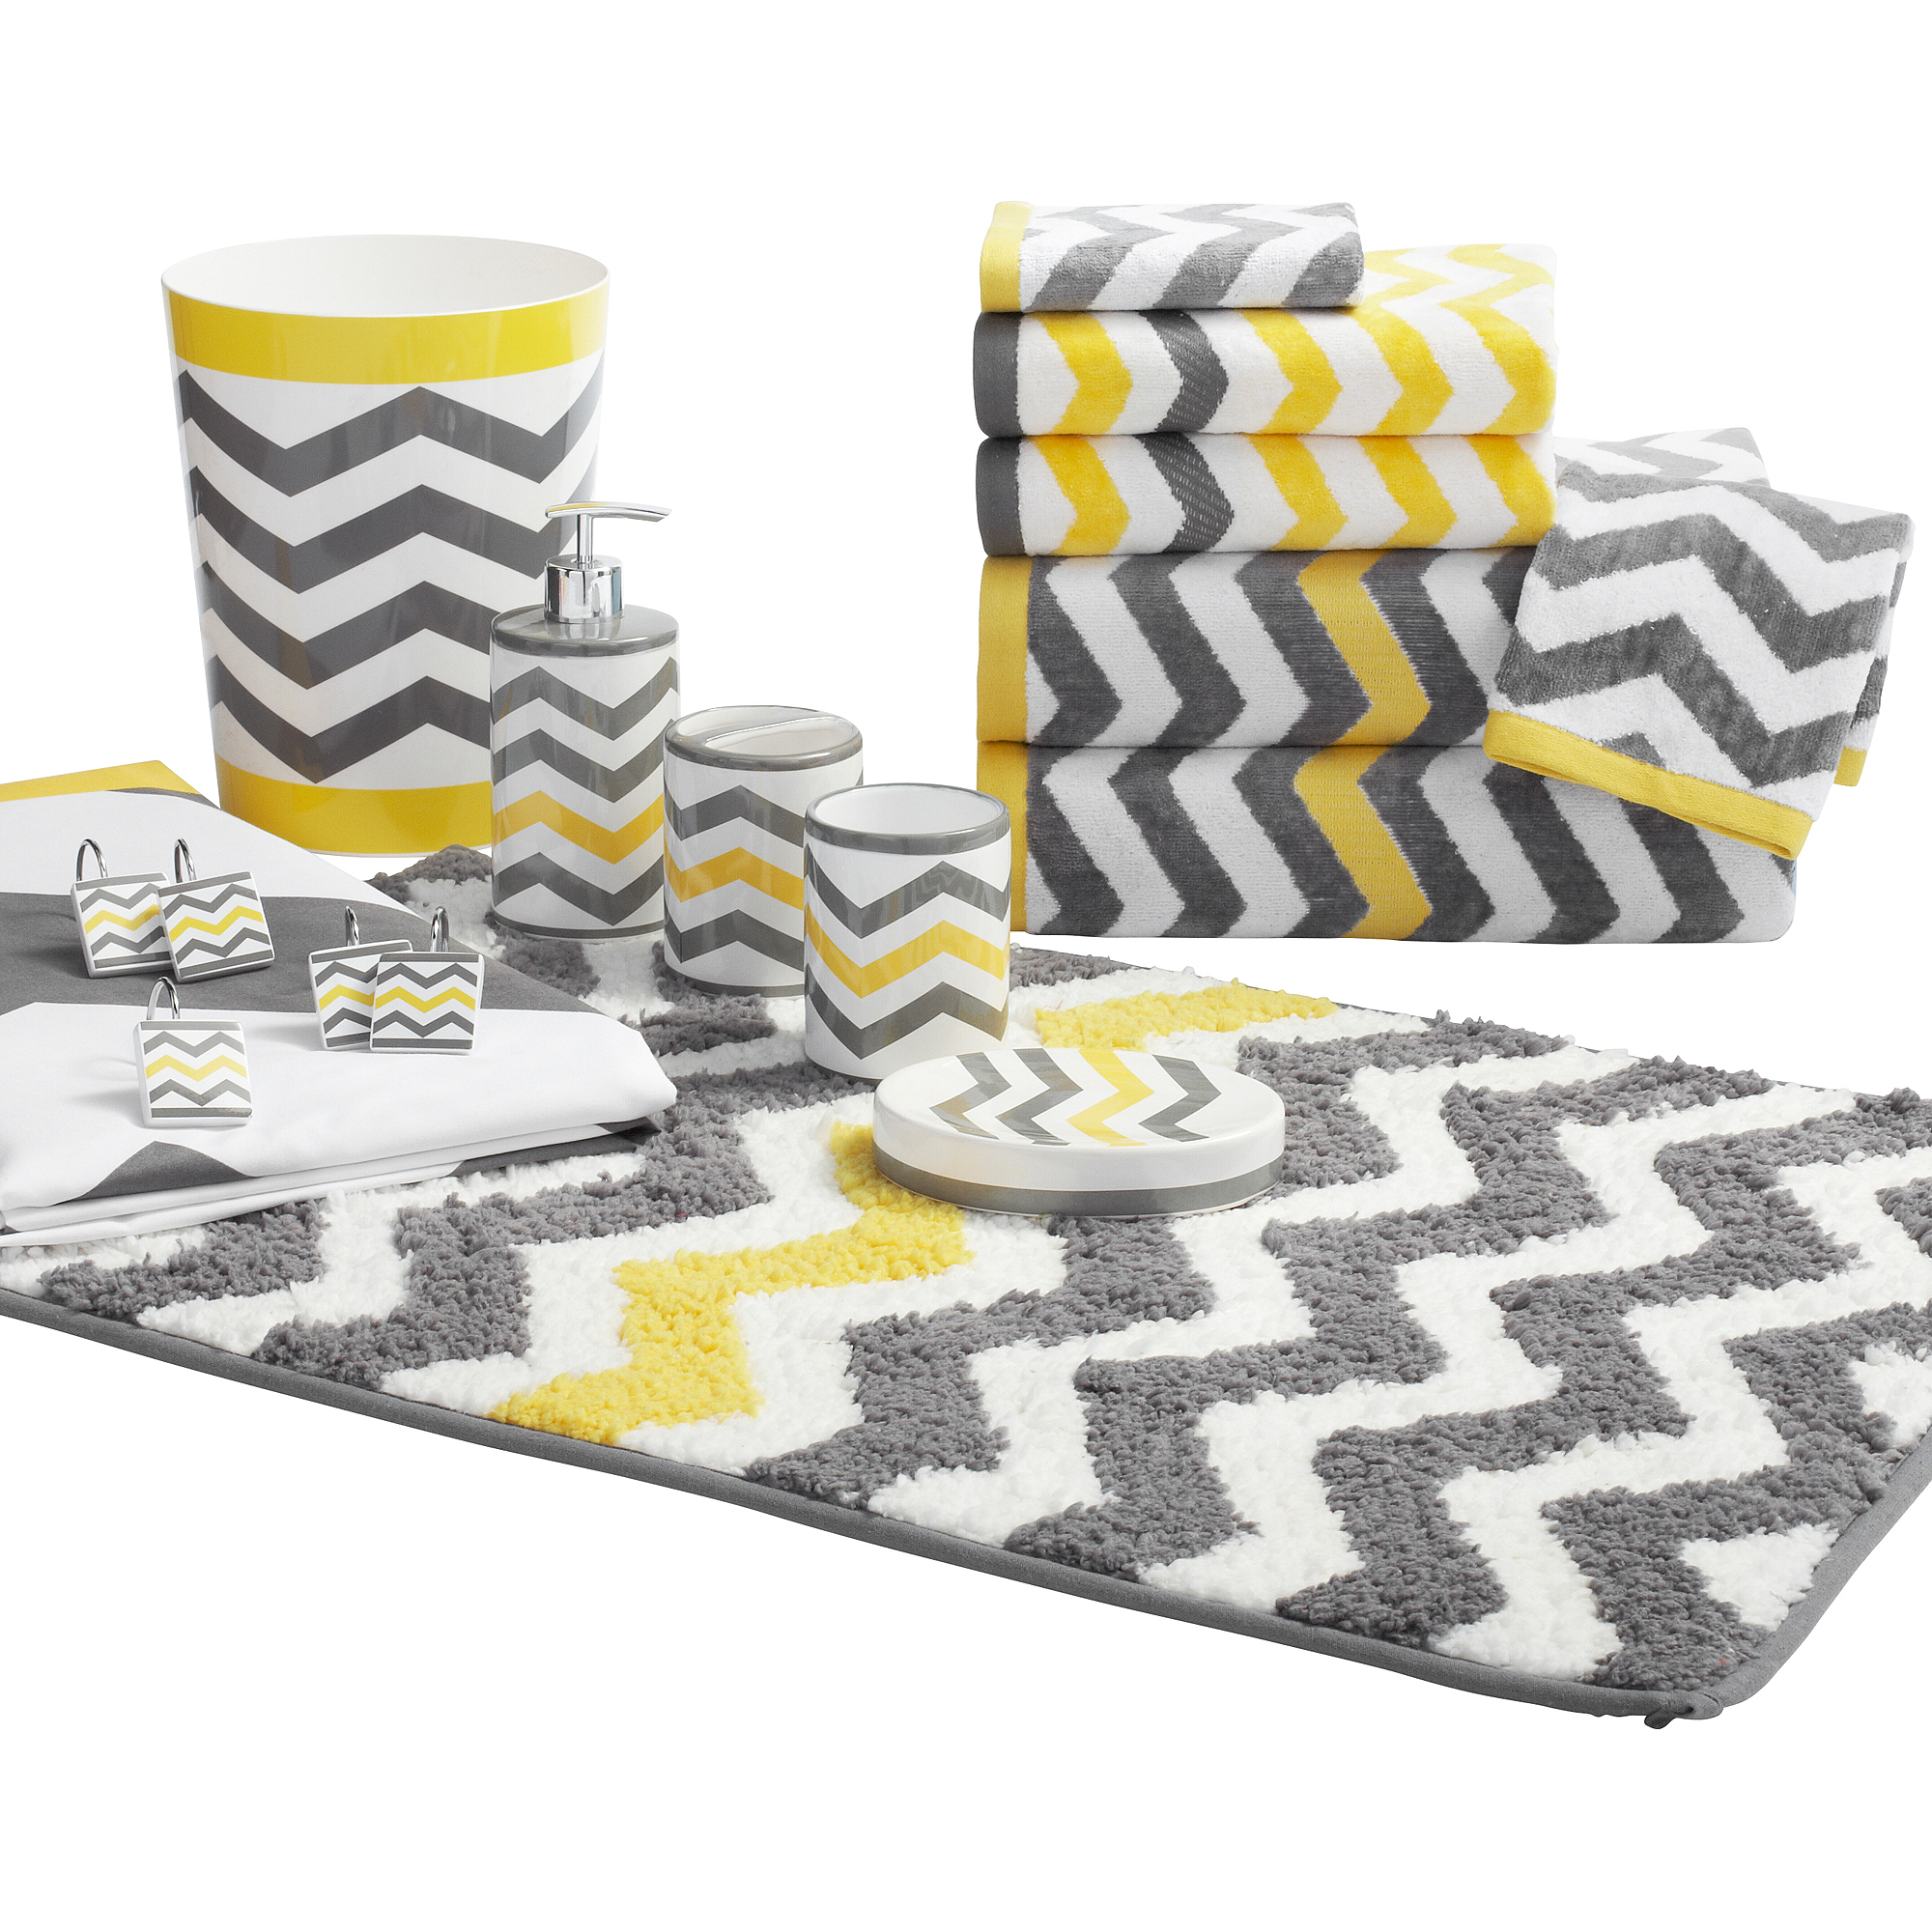 Mainstays Chevron Decorative Bath Towel Collection Walmartcom - Gray bathroom rug sets for bathroom decor ideas